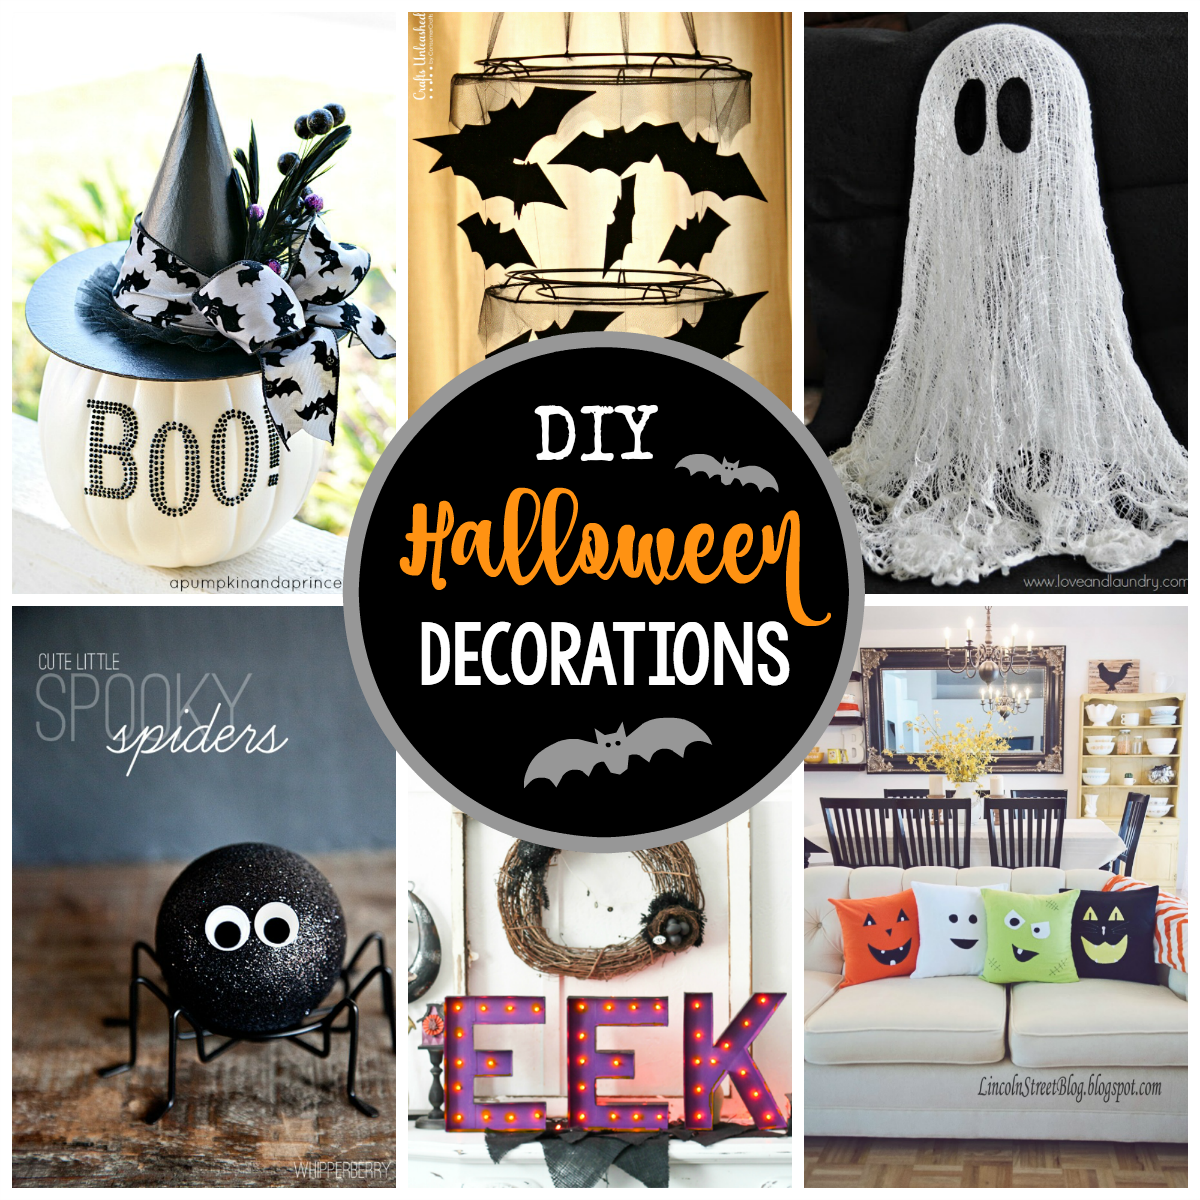 25 diy halloween decorations to make this year - crazy little projects